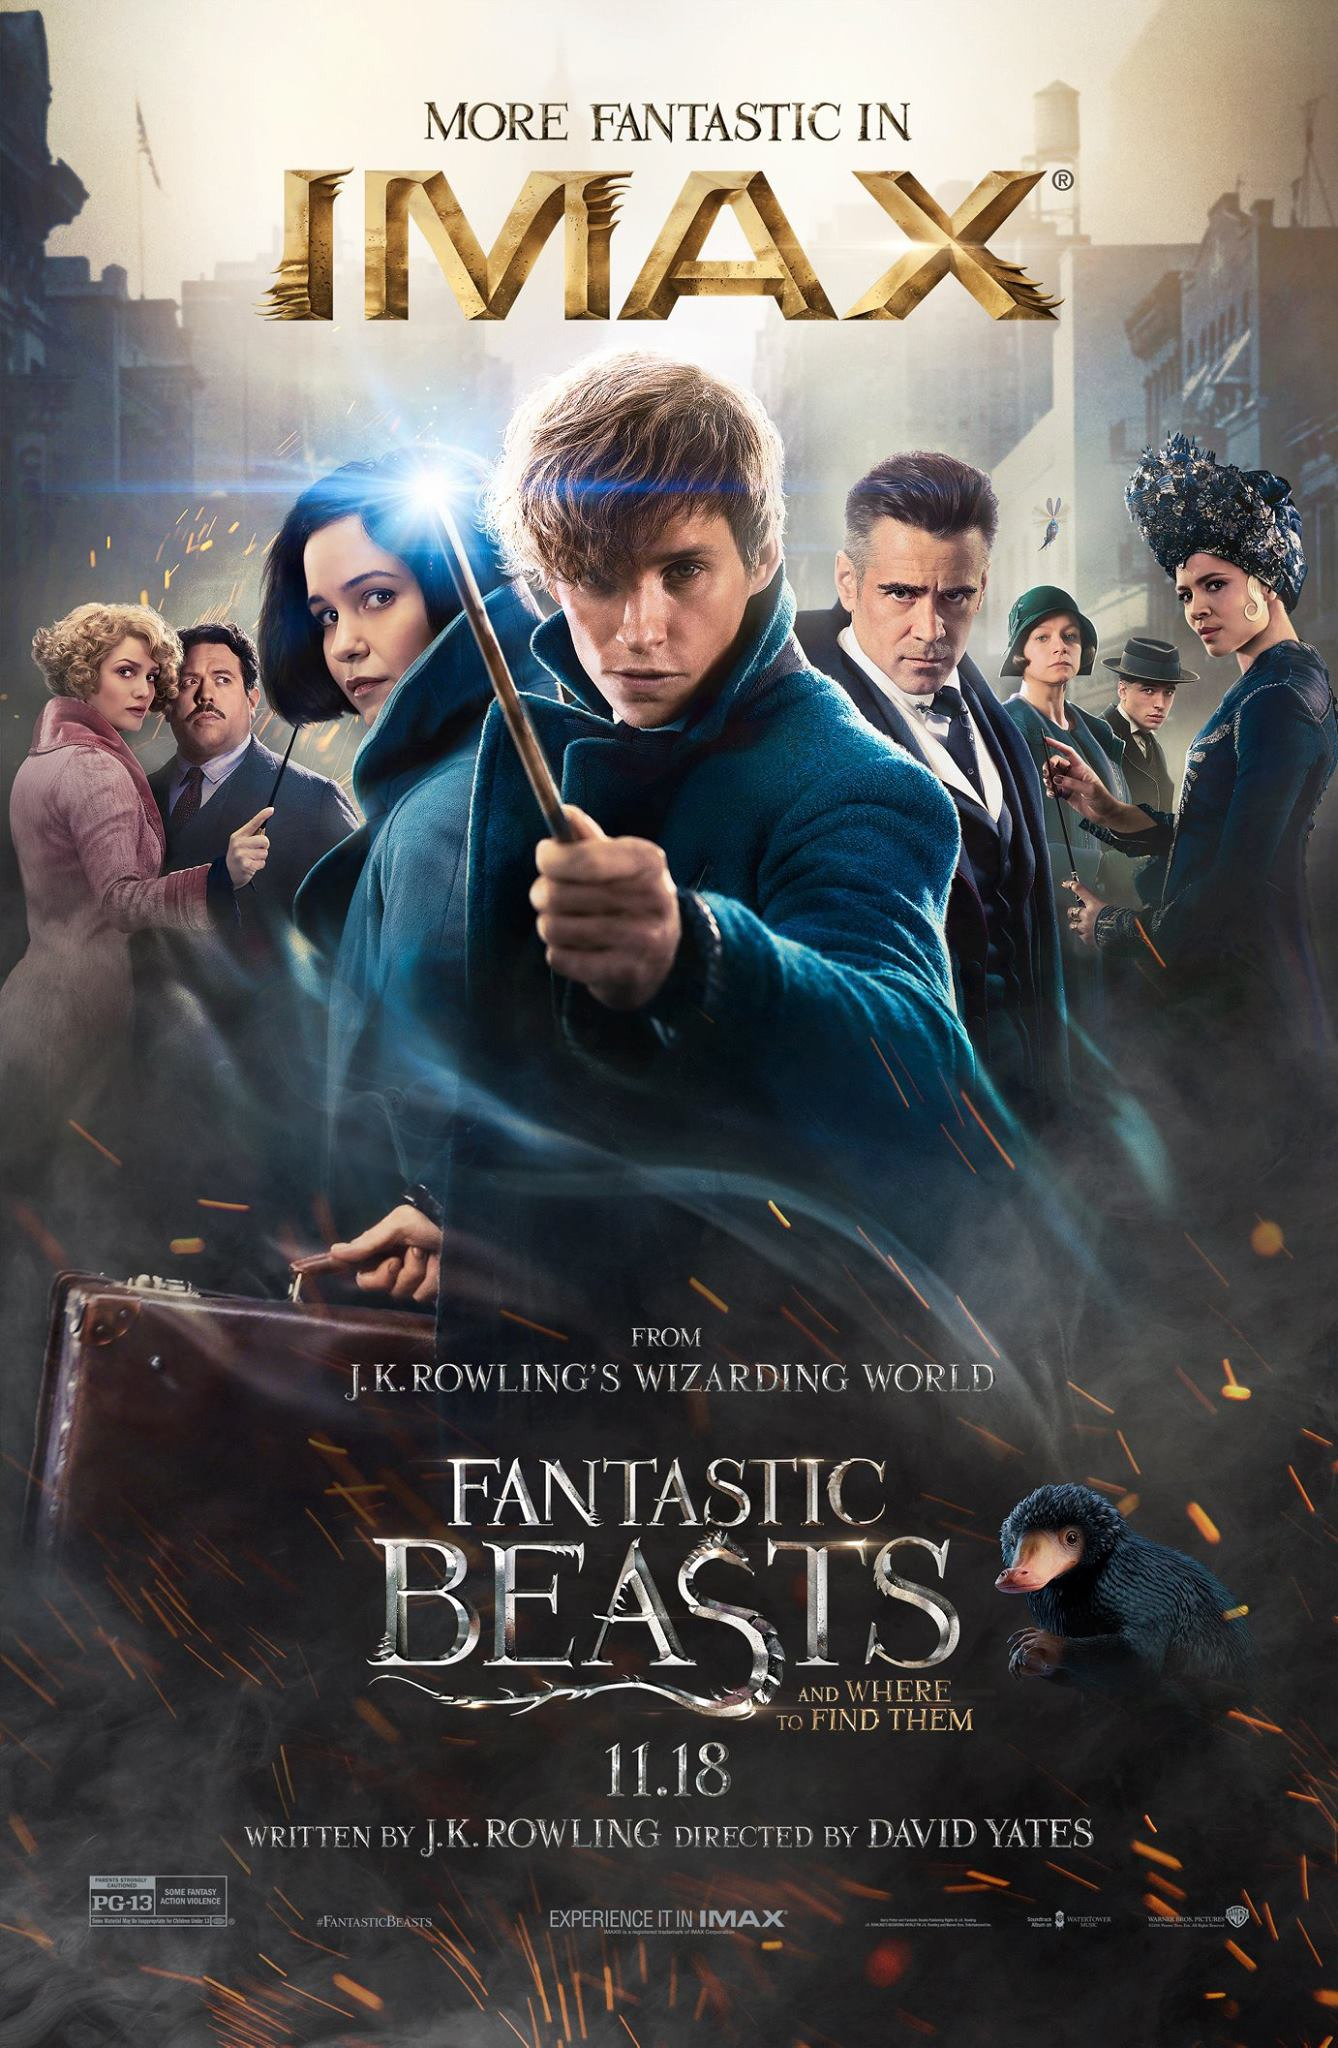 fantastic-beasts-and-where-to-find-them-imax-28outubro2016-2